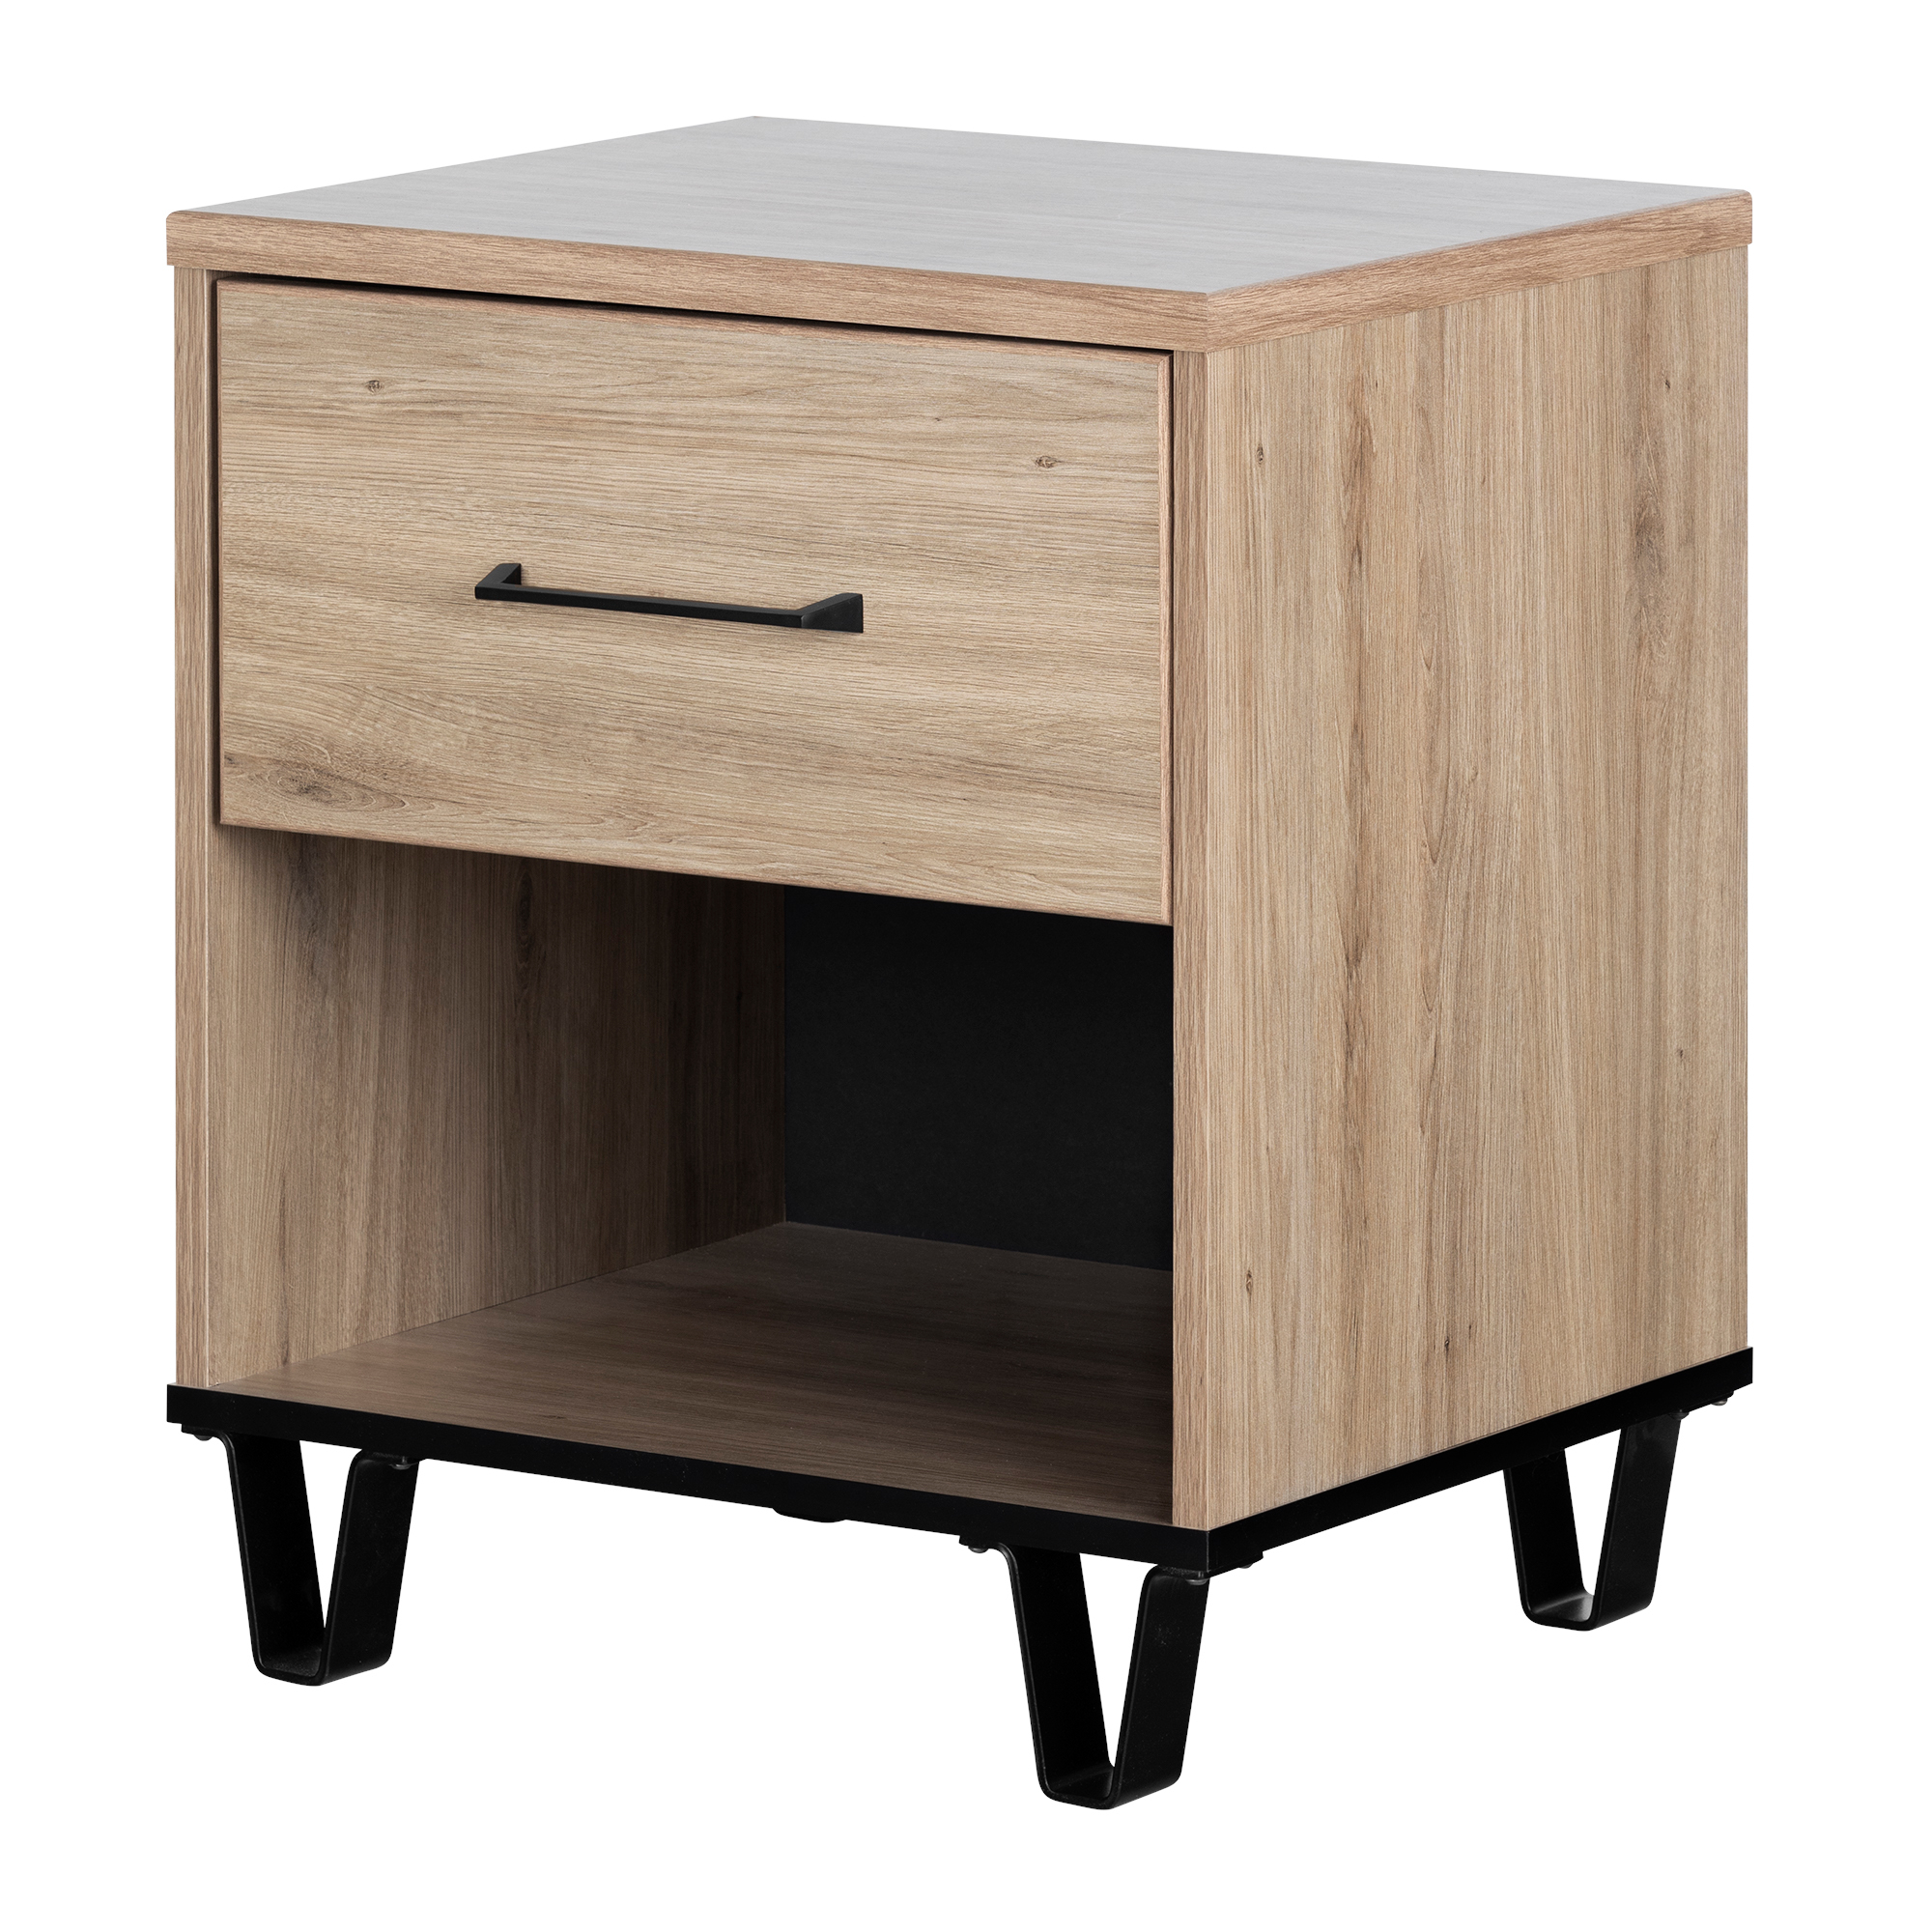 South Shore Fakto 1 Drawer Nightstand, Rustic Oak